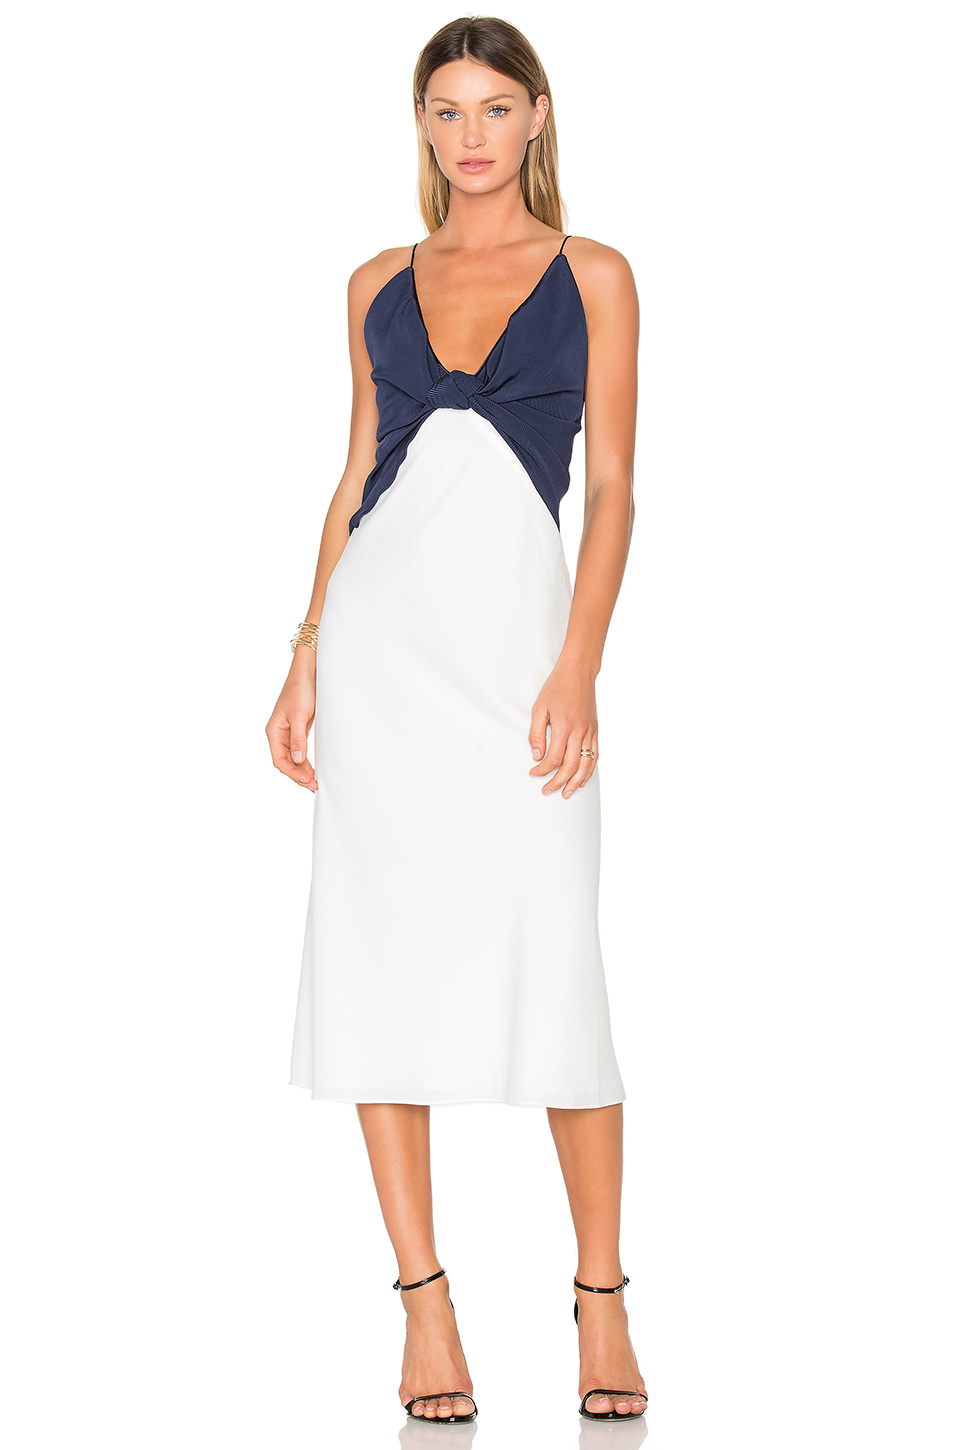 Christopher Esber Knotted Dress in Chalk & Navy